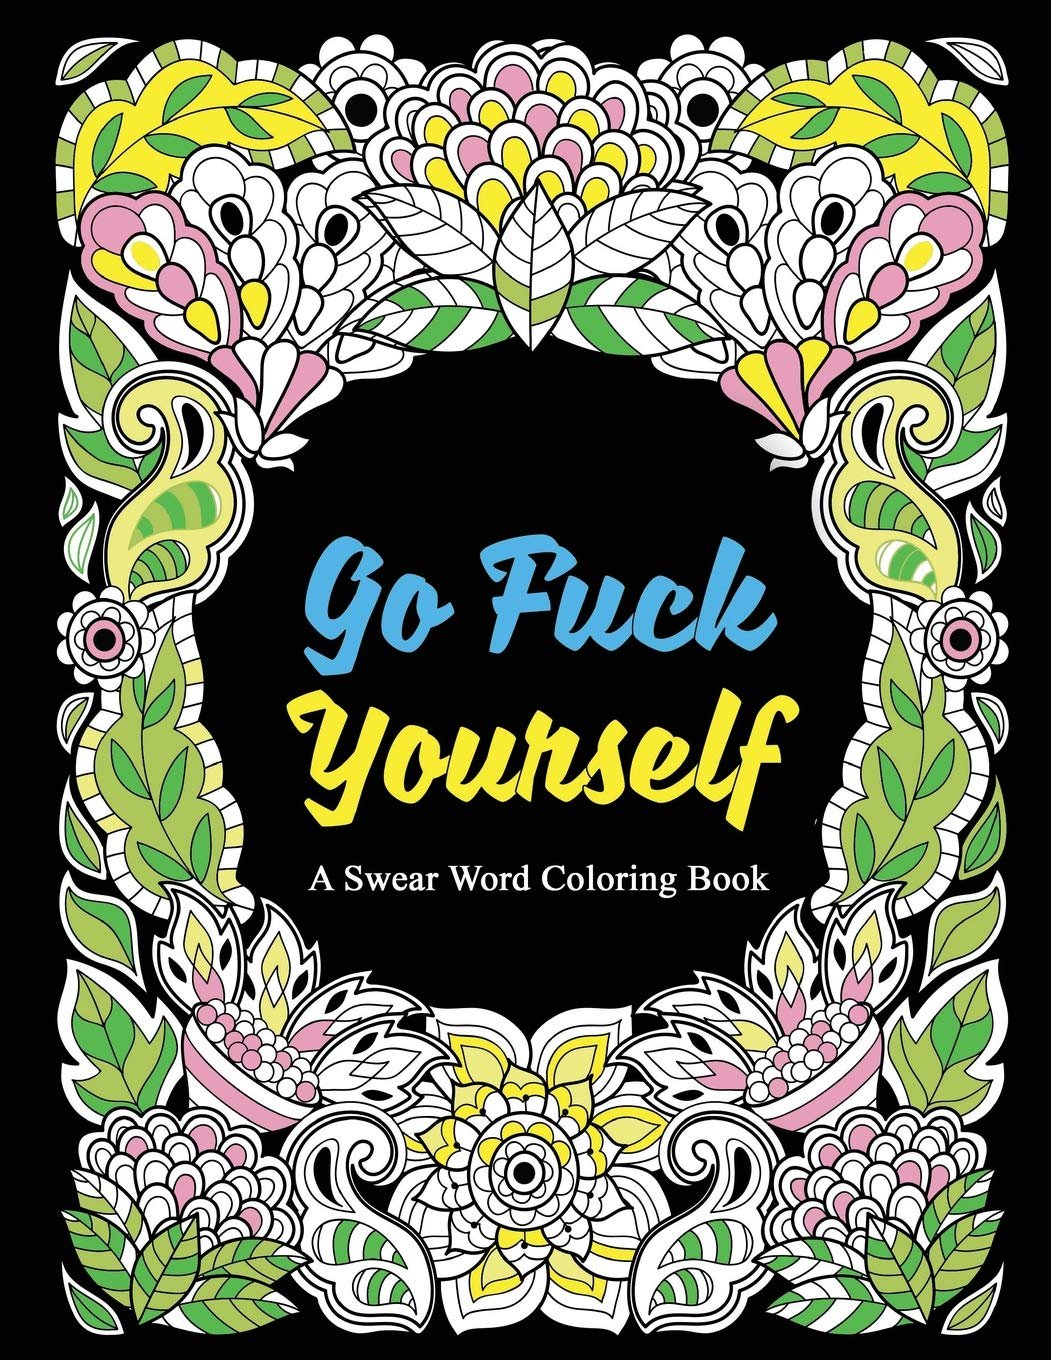 go fuck yourself a swear word coloring book to relax and unwind midnight edition adult coloring books swear words swear coloring sweary book coloring book color it away volume 1